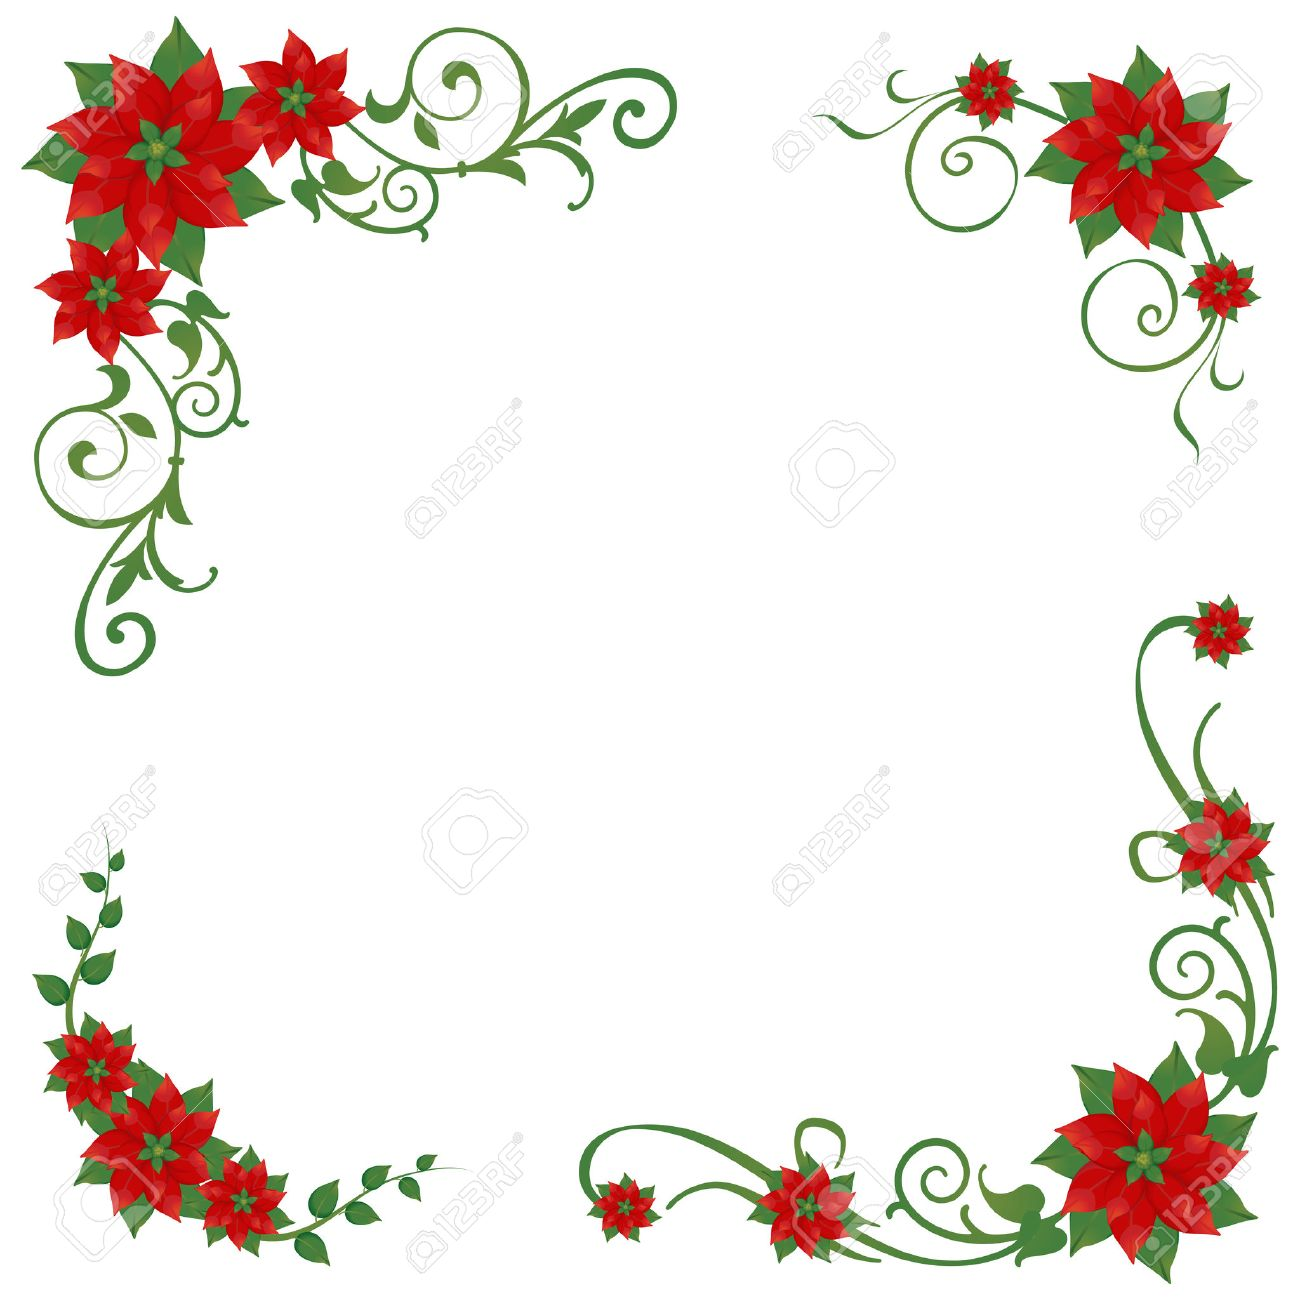 set of christmas poinsettia corner ornaments stock vector - Christmas Poinsettia